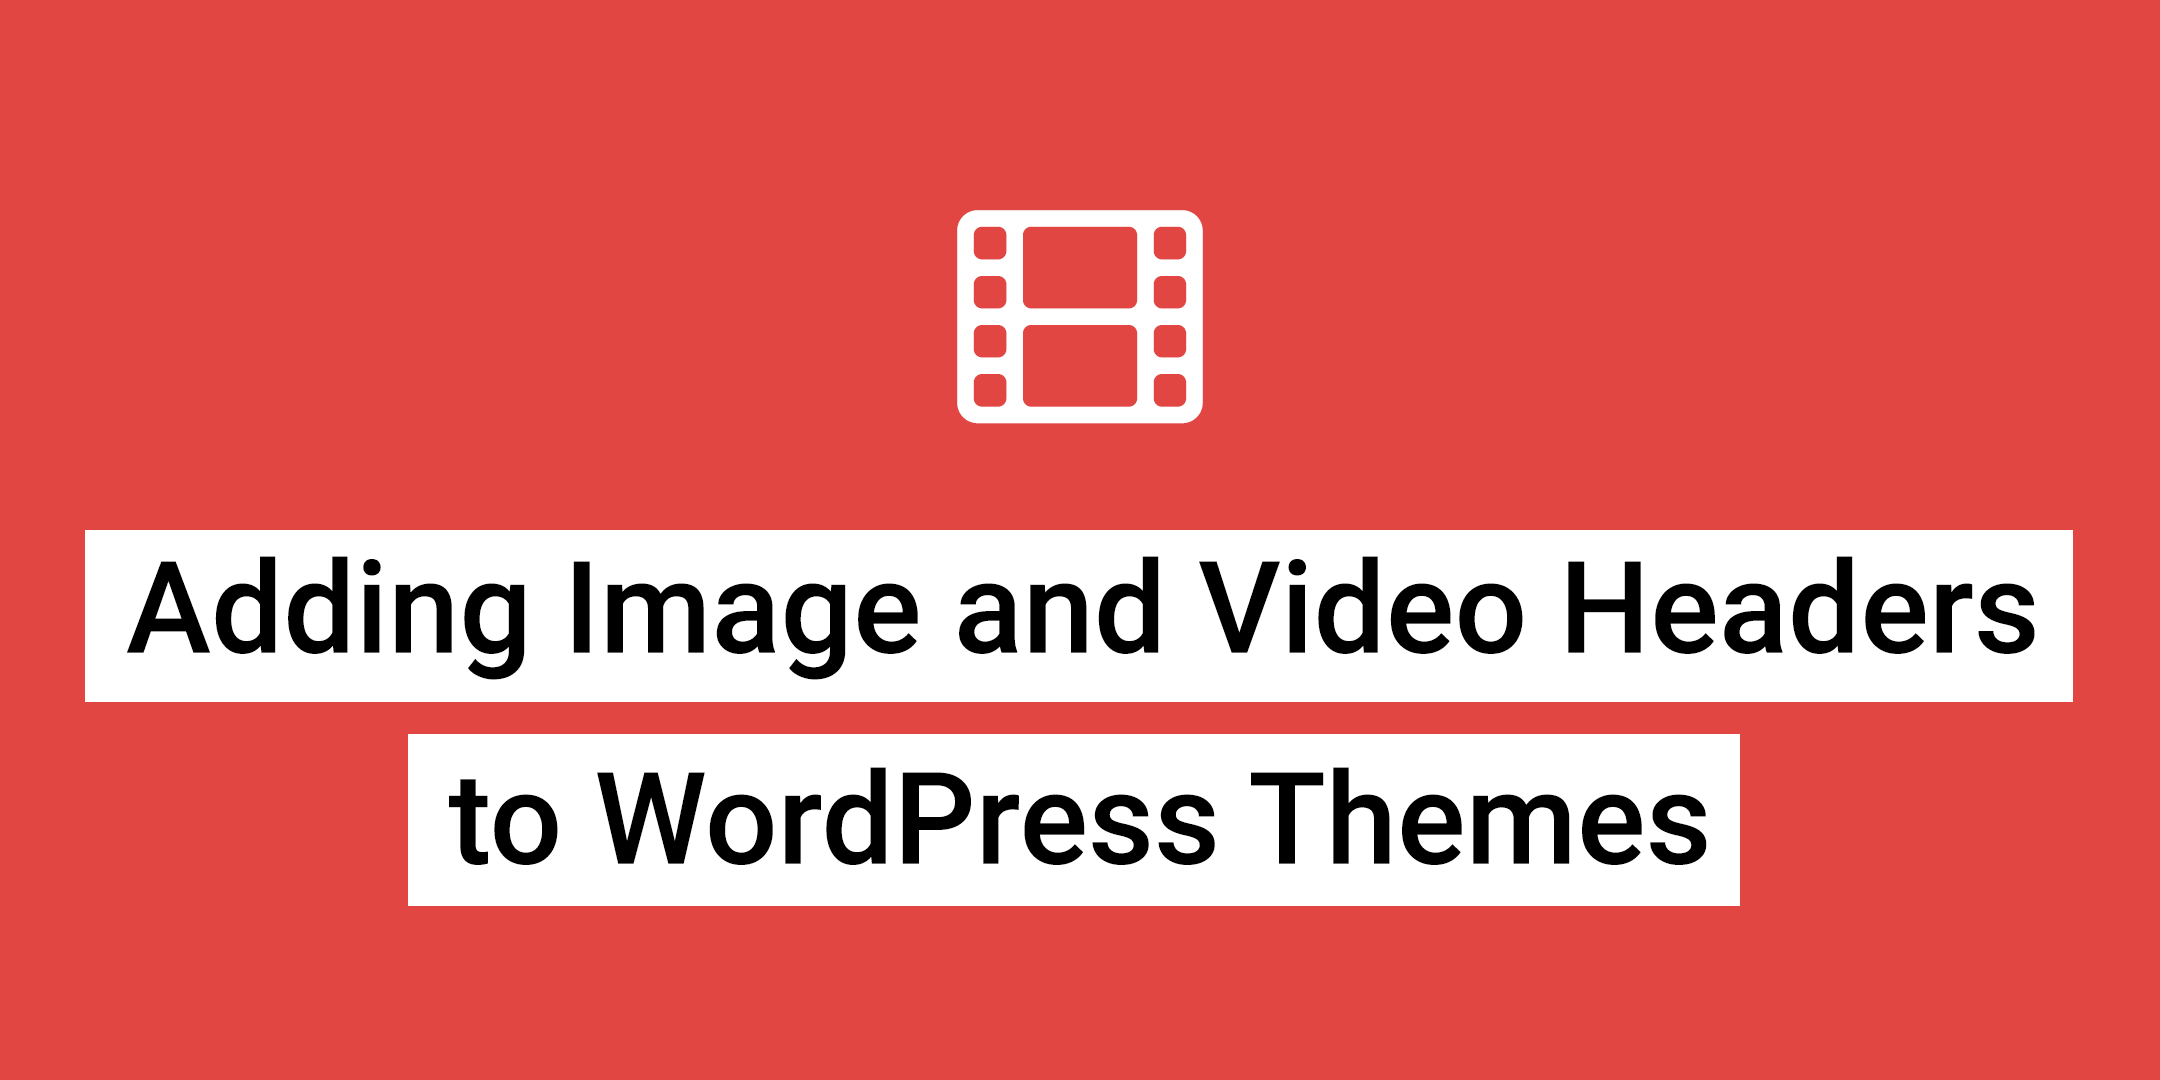 Adding Image and Video Headers to Your WordPress Themes